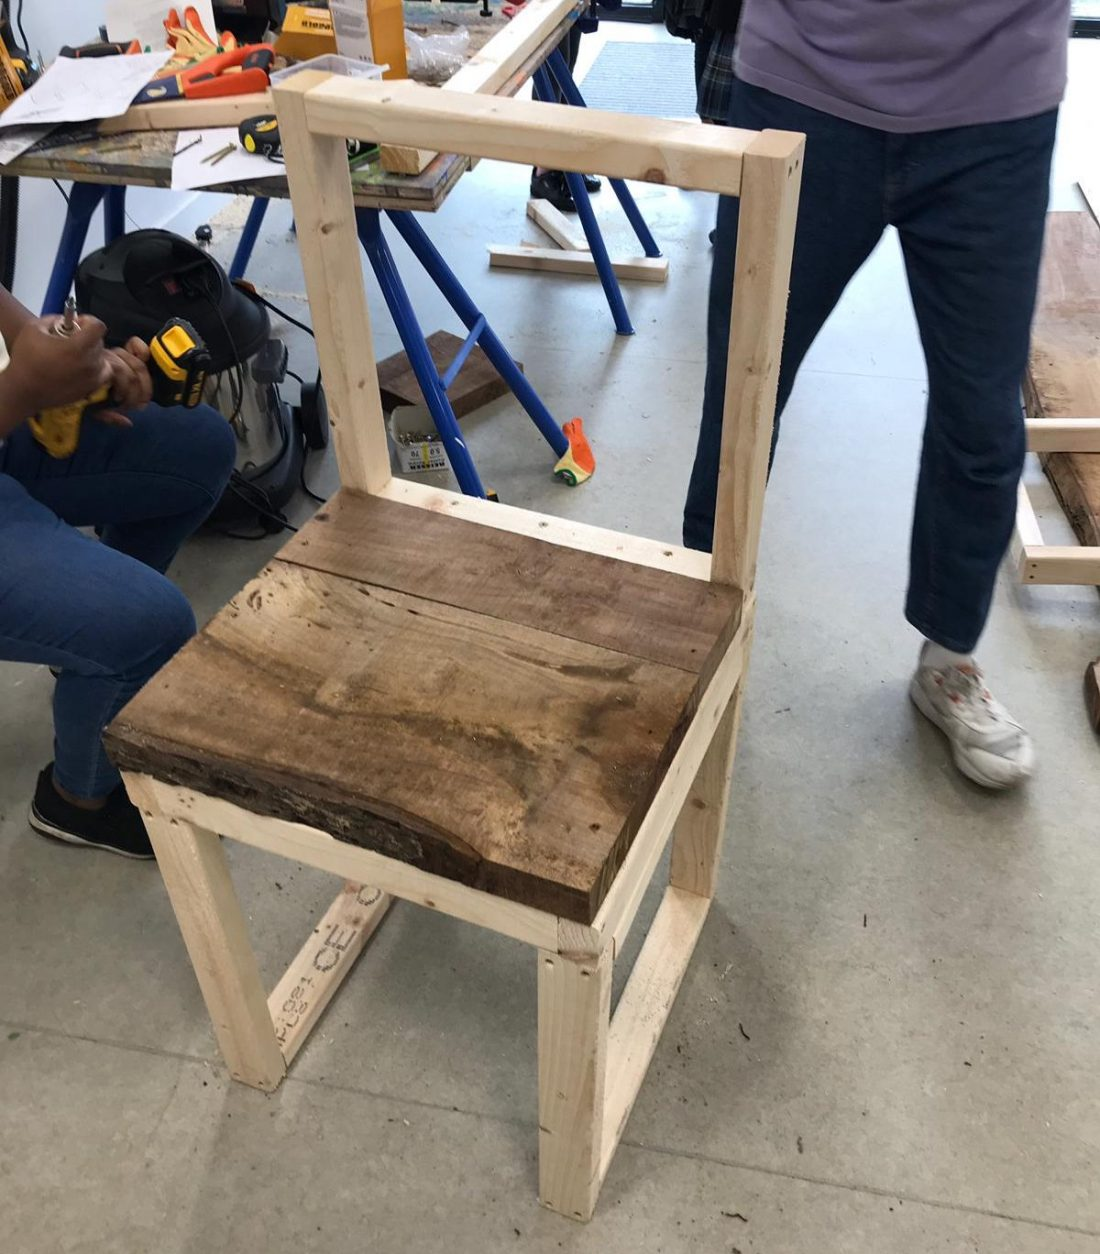 <p>Chair made from walnut wood by children at Art Block. Photo: Jahzel Newell-Marshall</p>